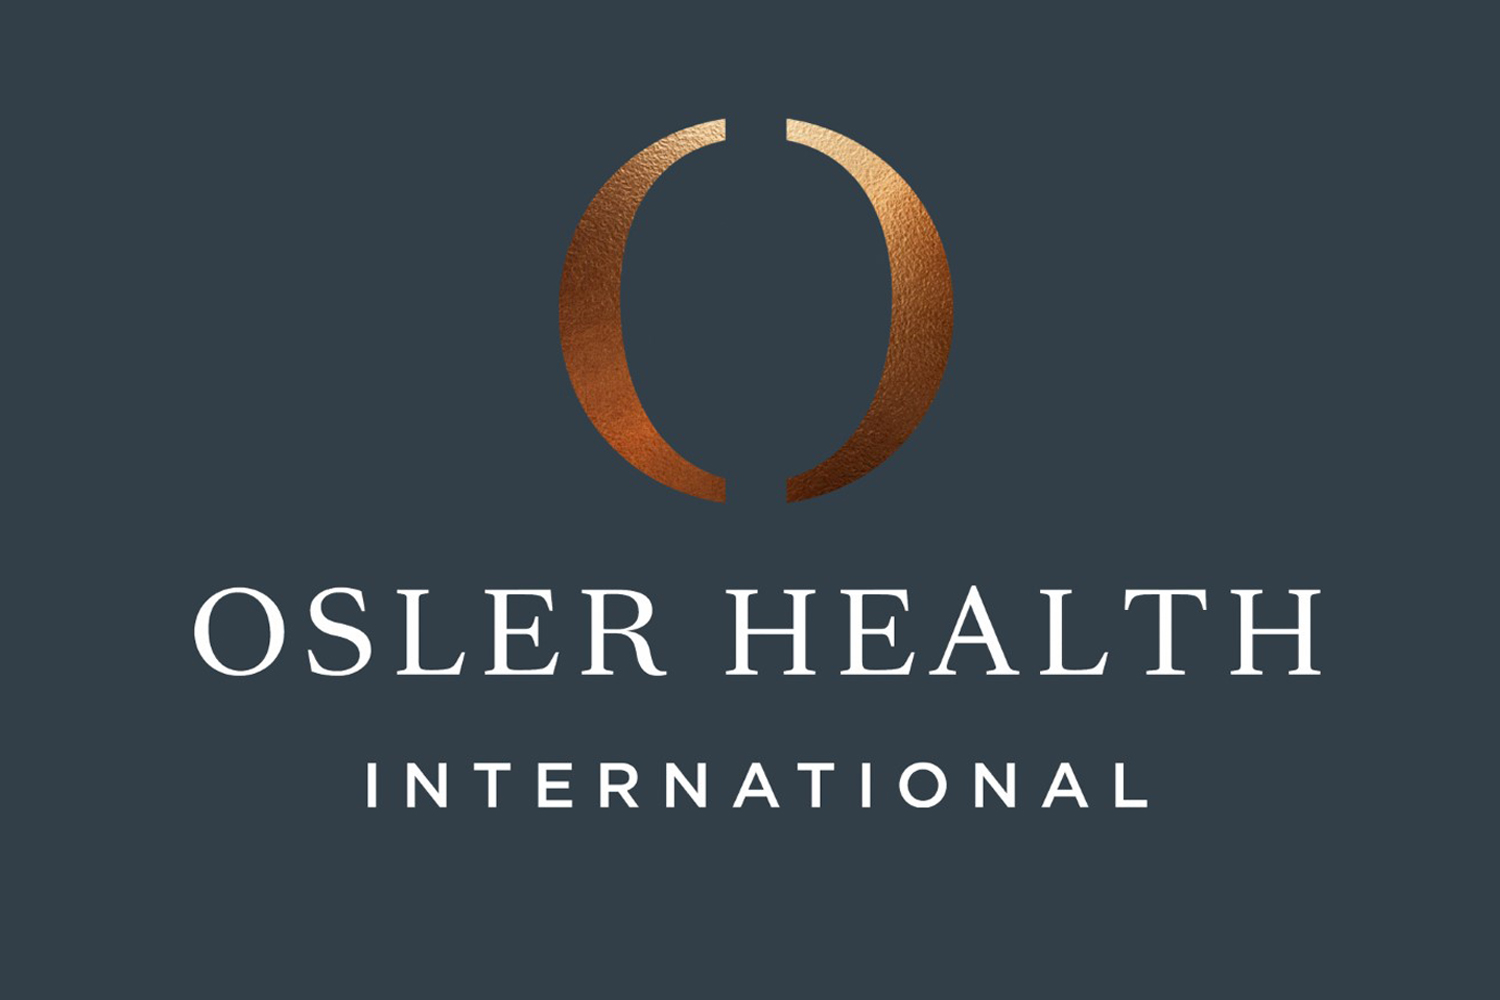 Osler Health International